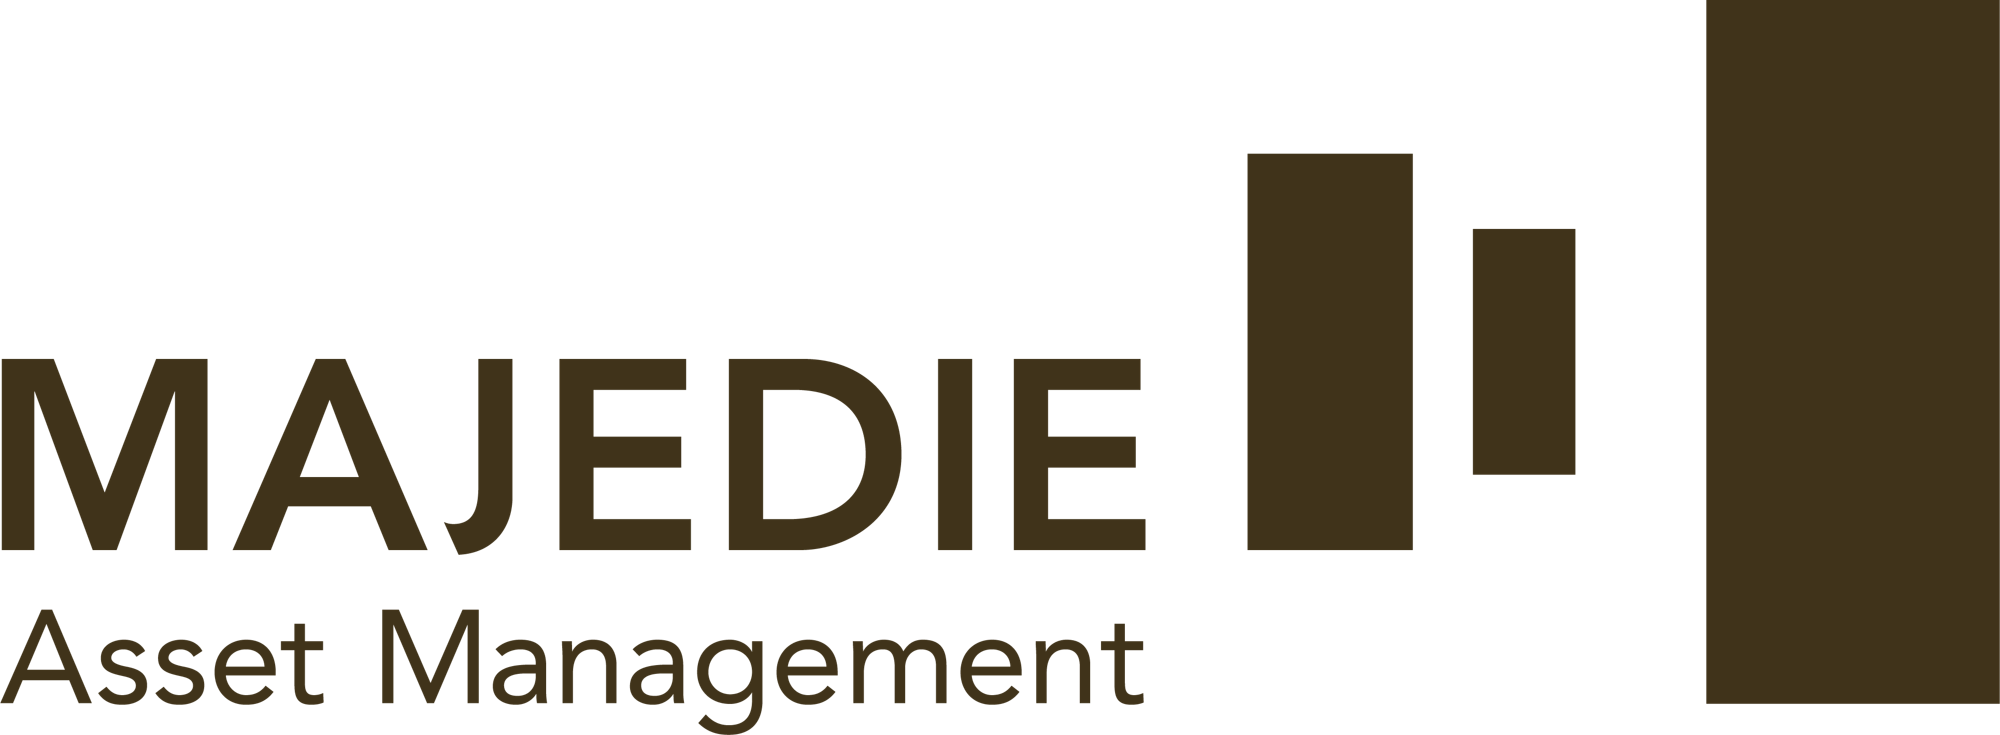 Majedie Asset Management Appoints Montfort Communications